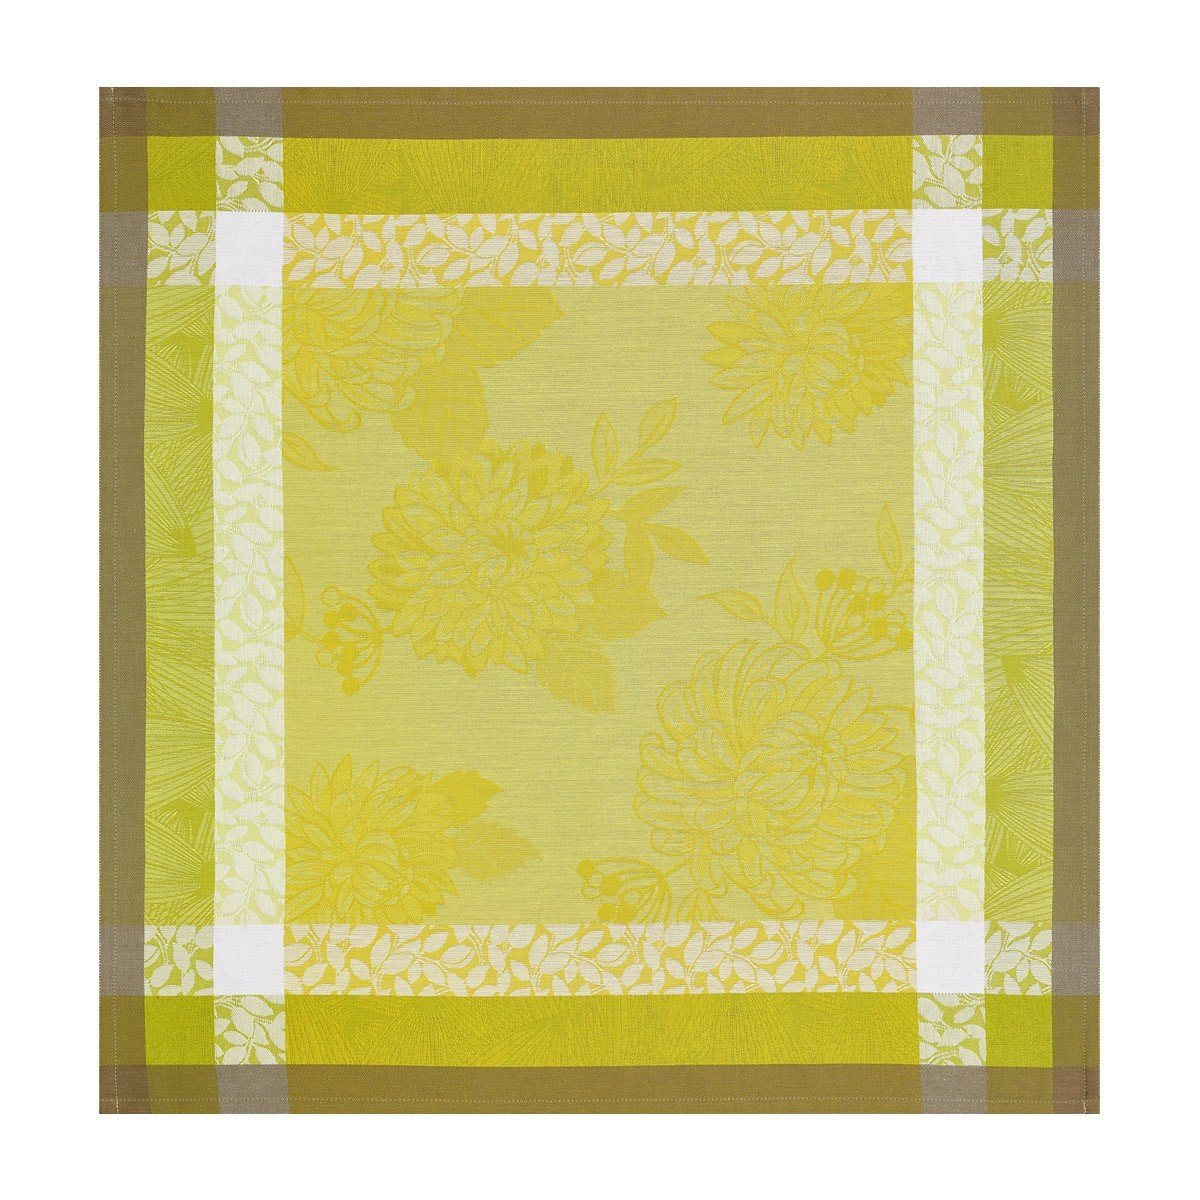 Le Jacquard Français Table Linen Parfums De Bagatelle Fig Linens Freesia Green Yellow Napkin